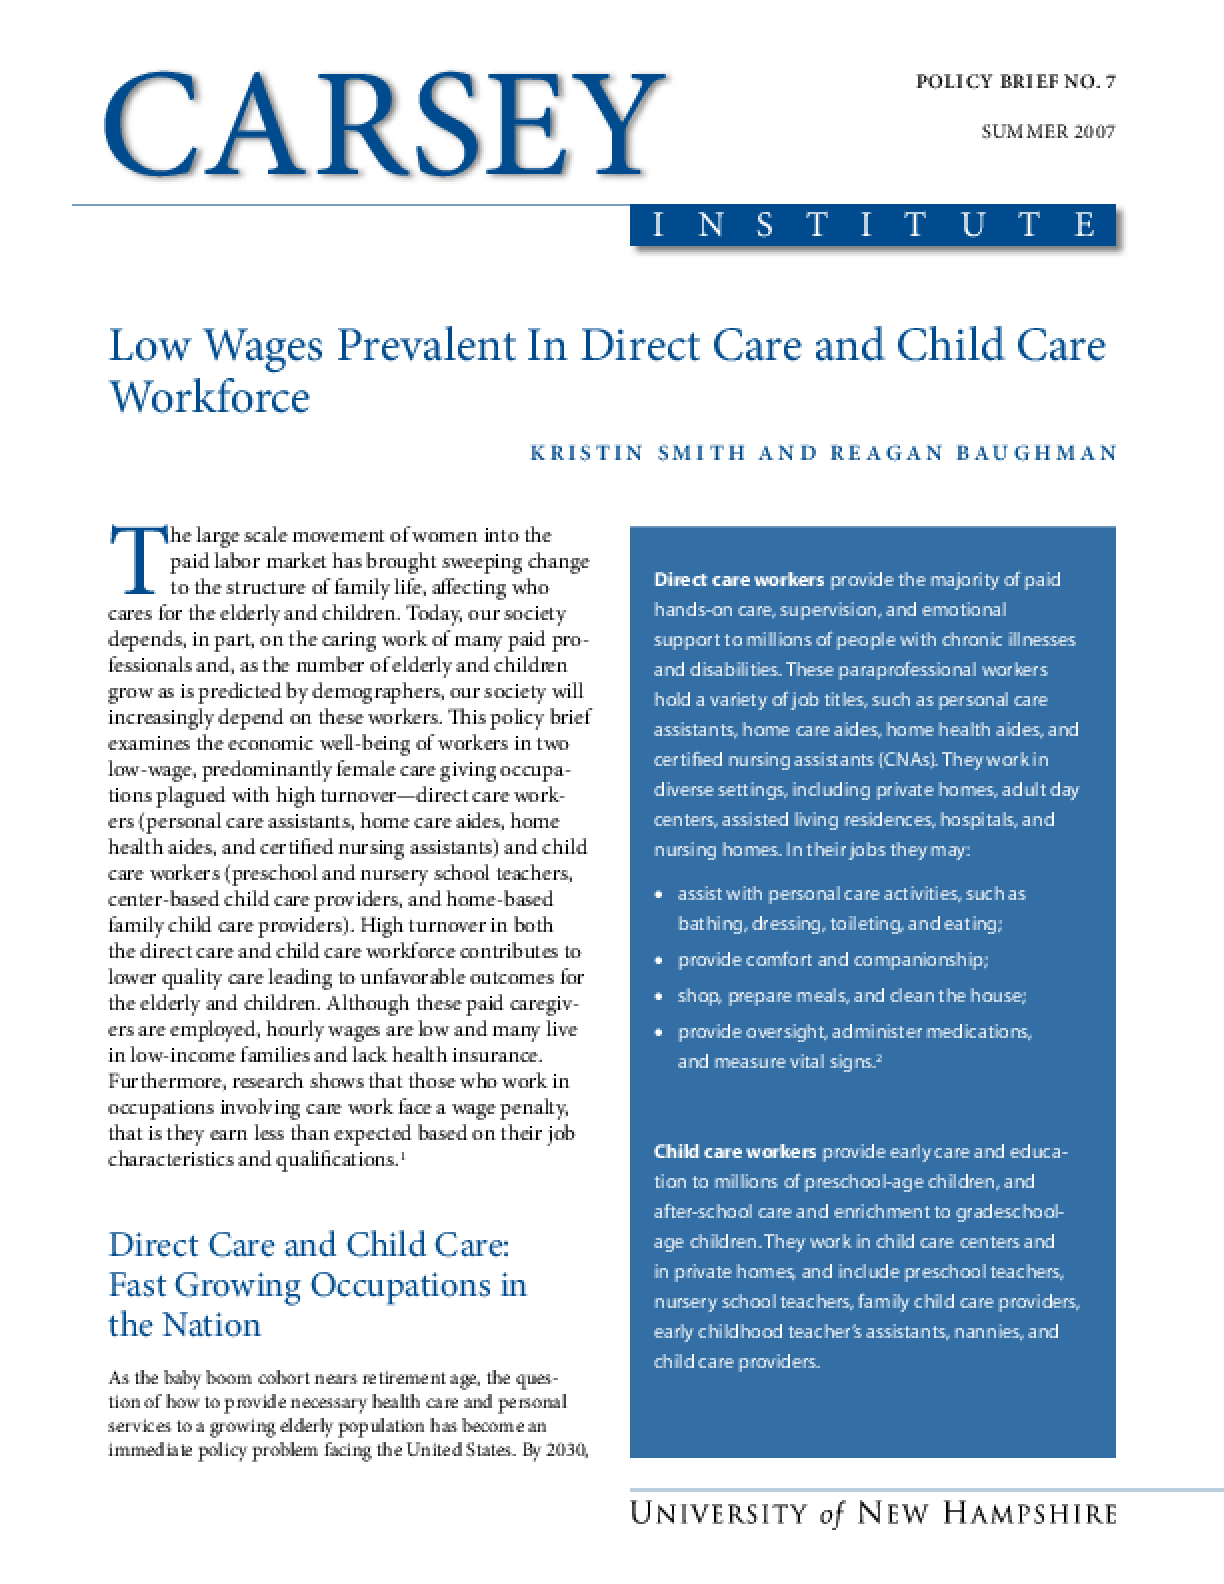 Low Wages Prevalent In Direct Care and Child Care Workforce